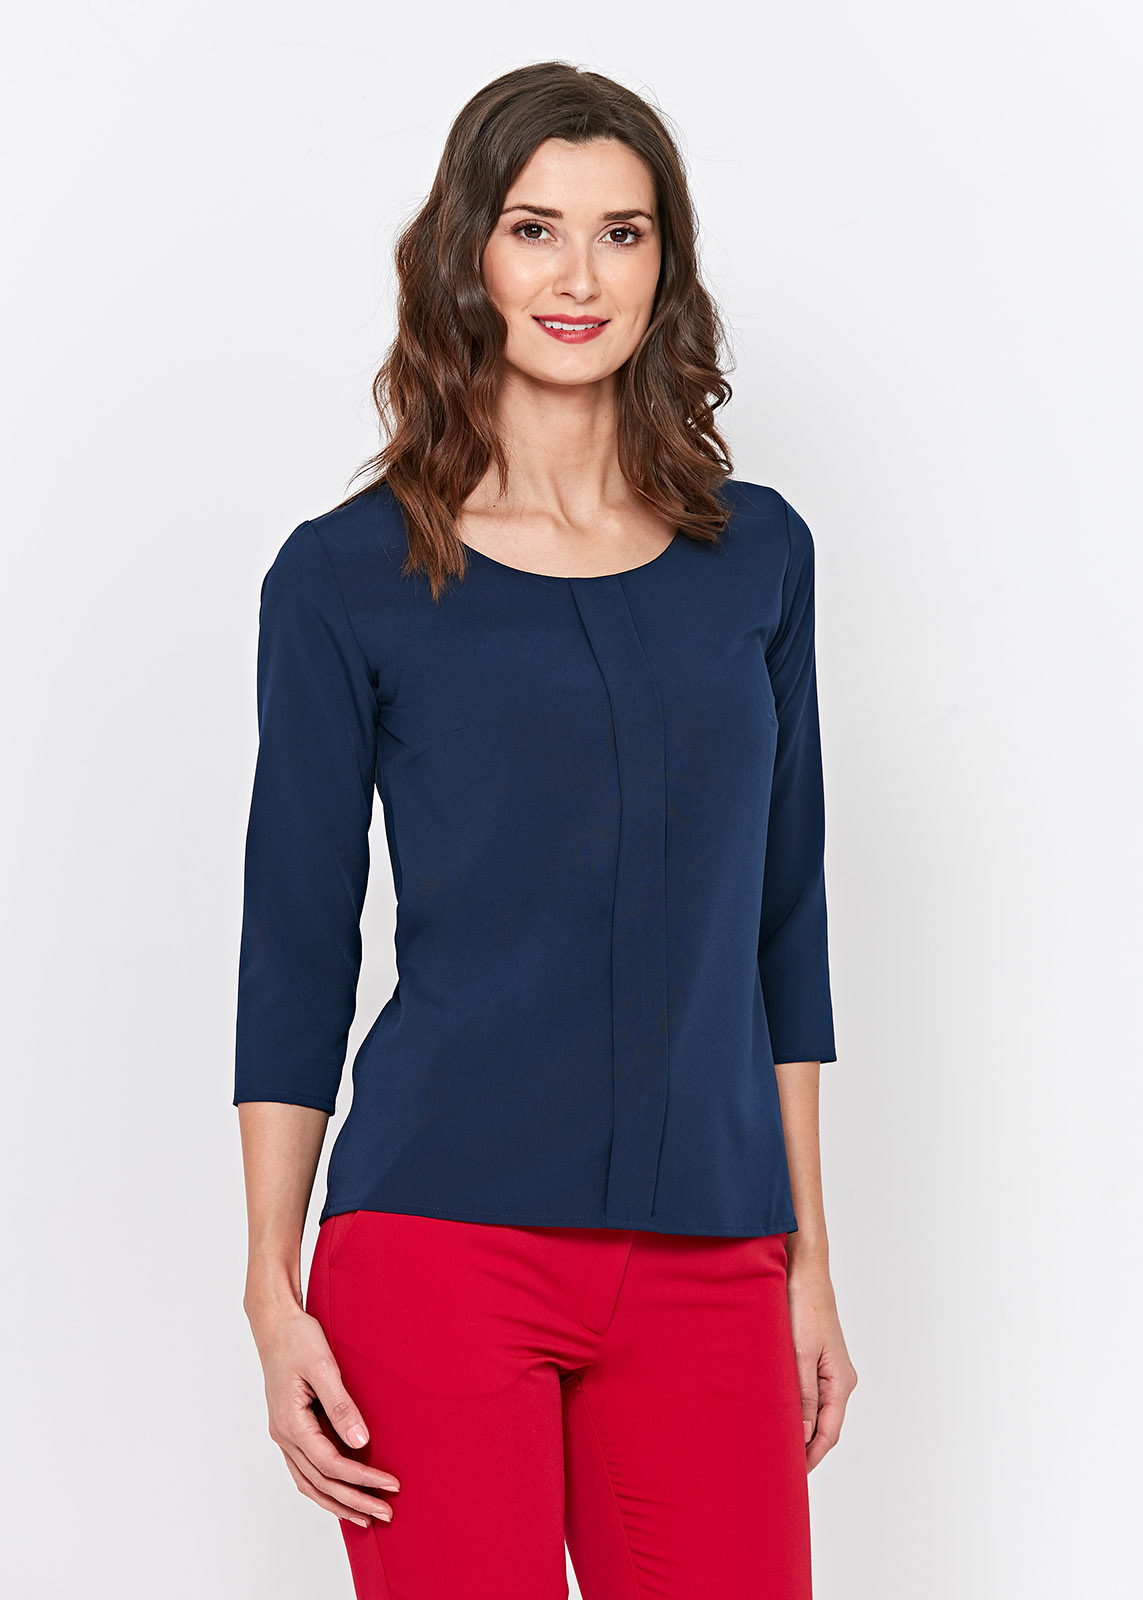 Women's blue blouse ZOCHA Navyblue